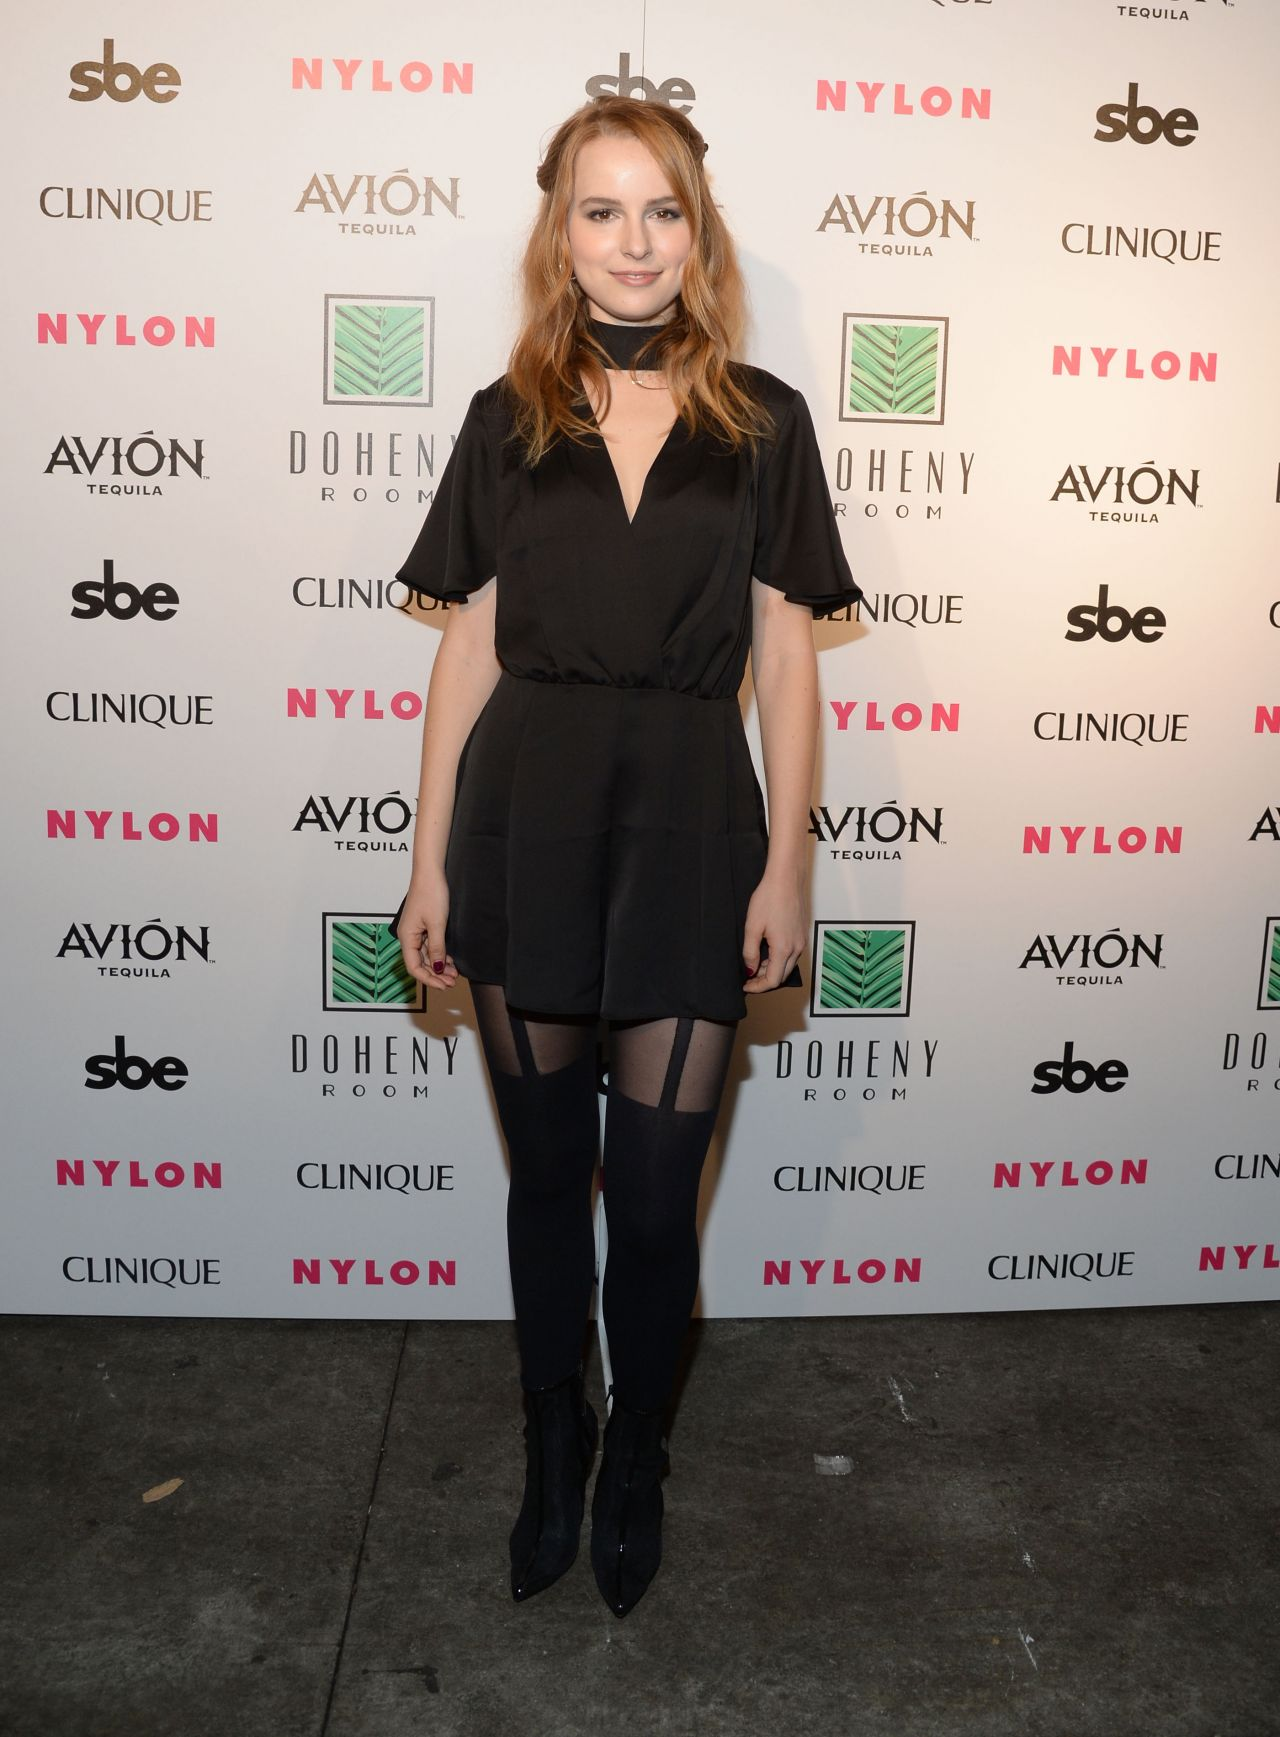 Bridgit Mendler Nylon Nights At The Doheny Room In